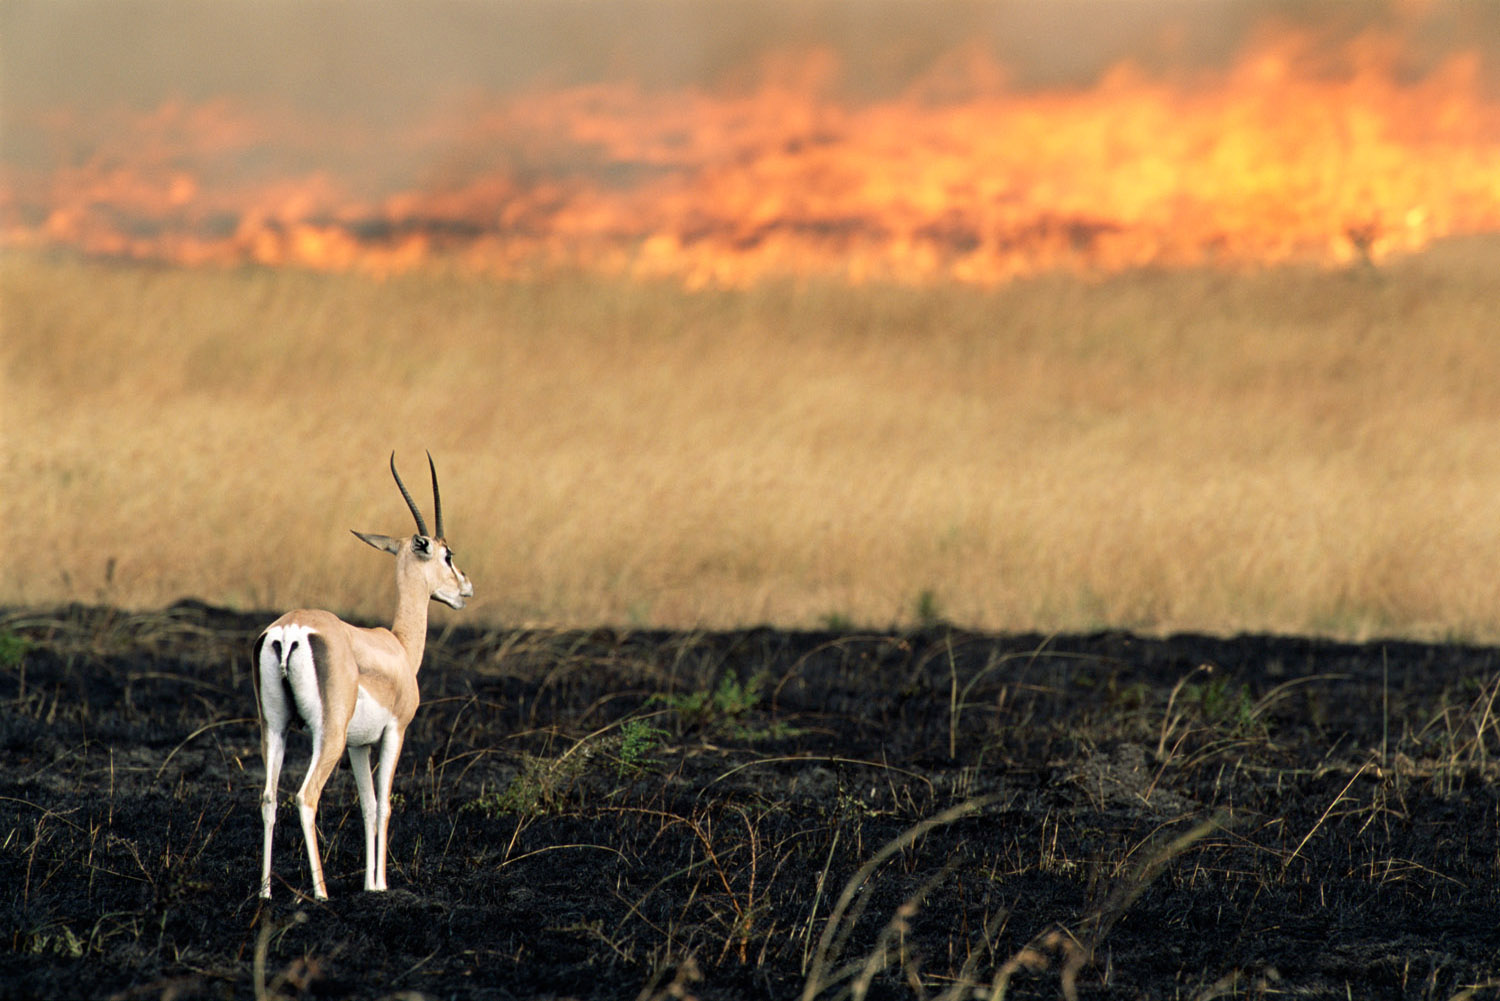 Grant's gazelle in managed fire zone, Masai Mara National Reserve, Kenya